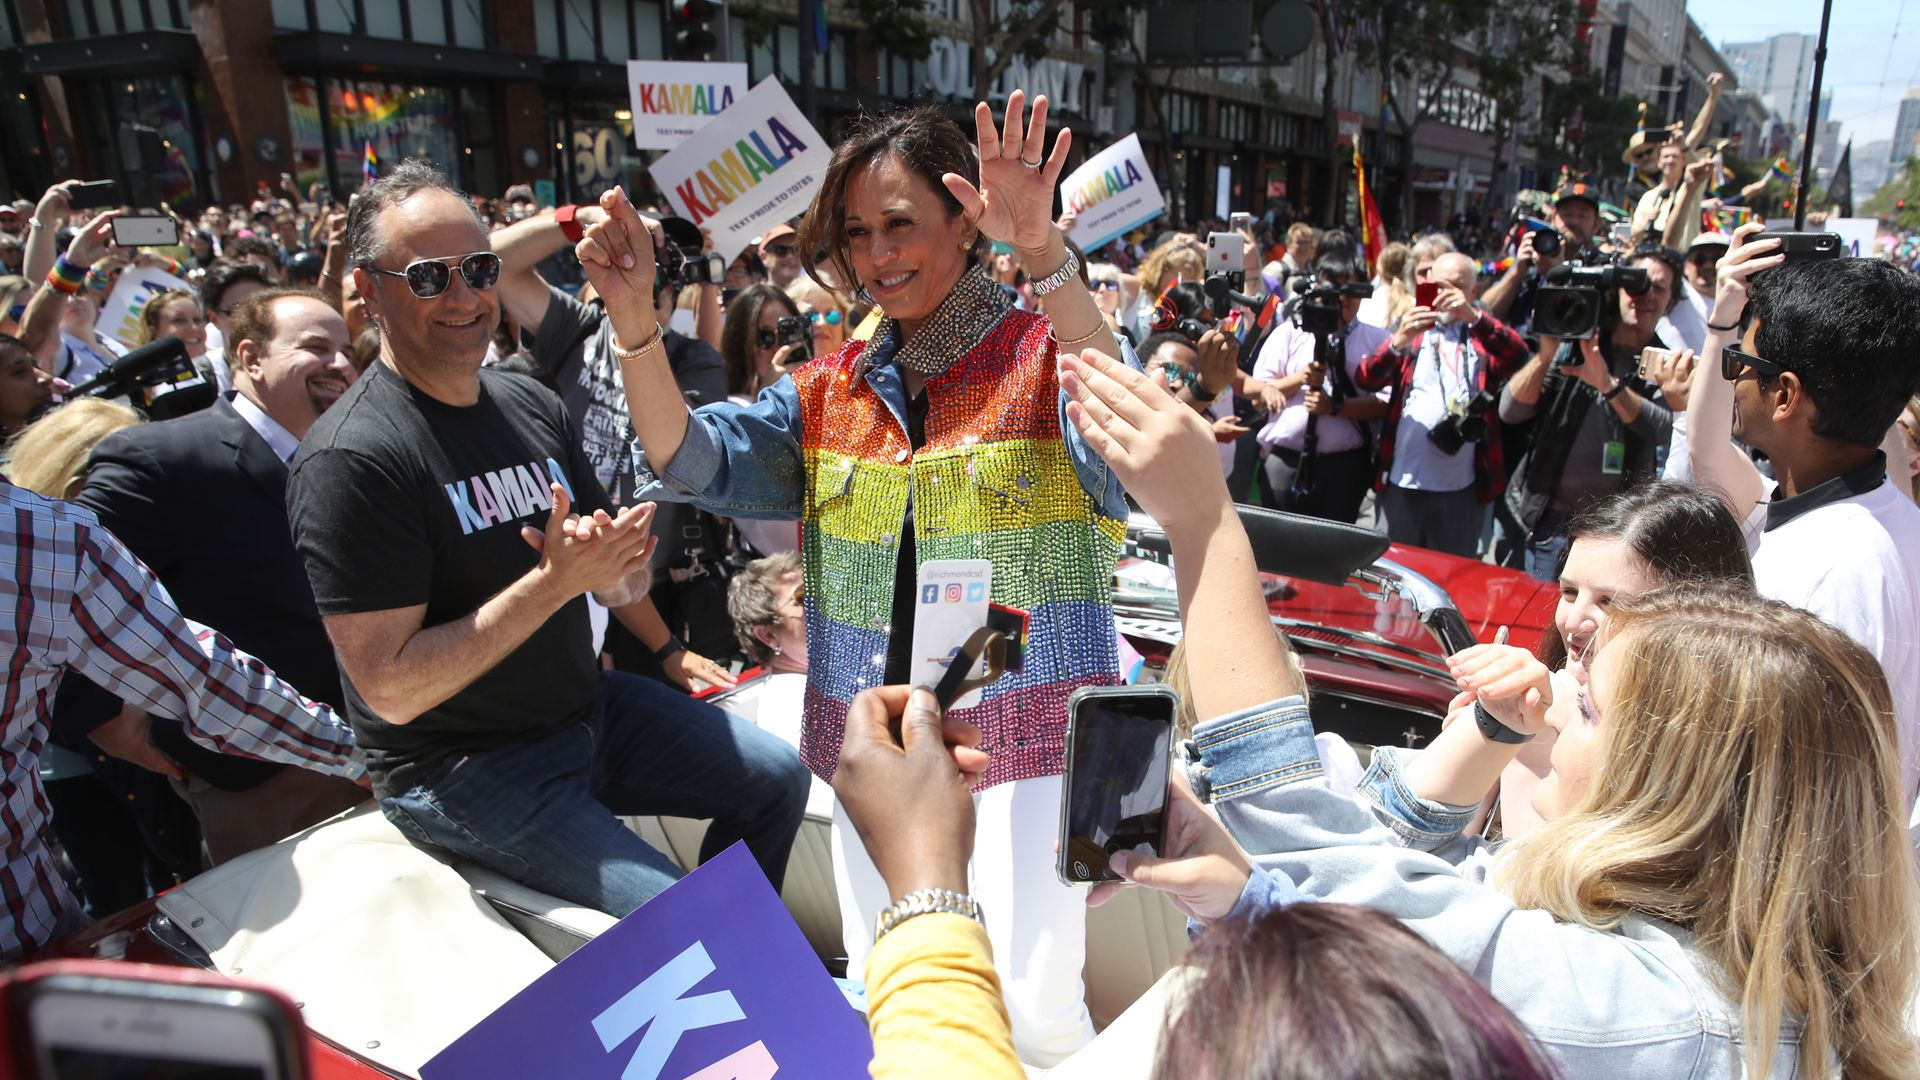 Democratic presidential candidate U.S. Sen. Kamala Harris (D-CA) waves as she rides in a car during the SF Pride Parade on June 30, 2019 in San Francisco, California.